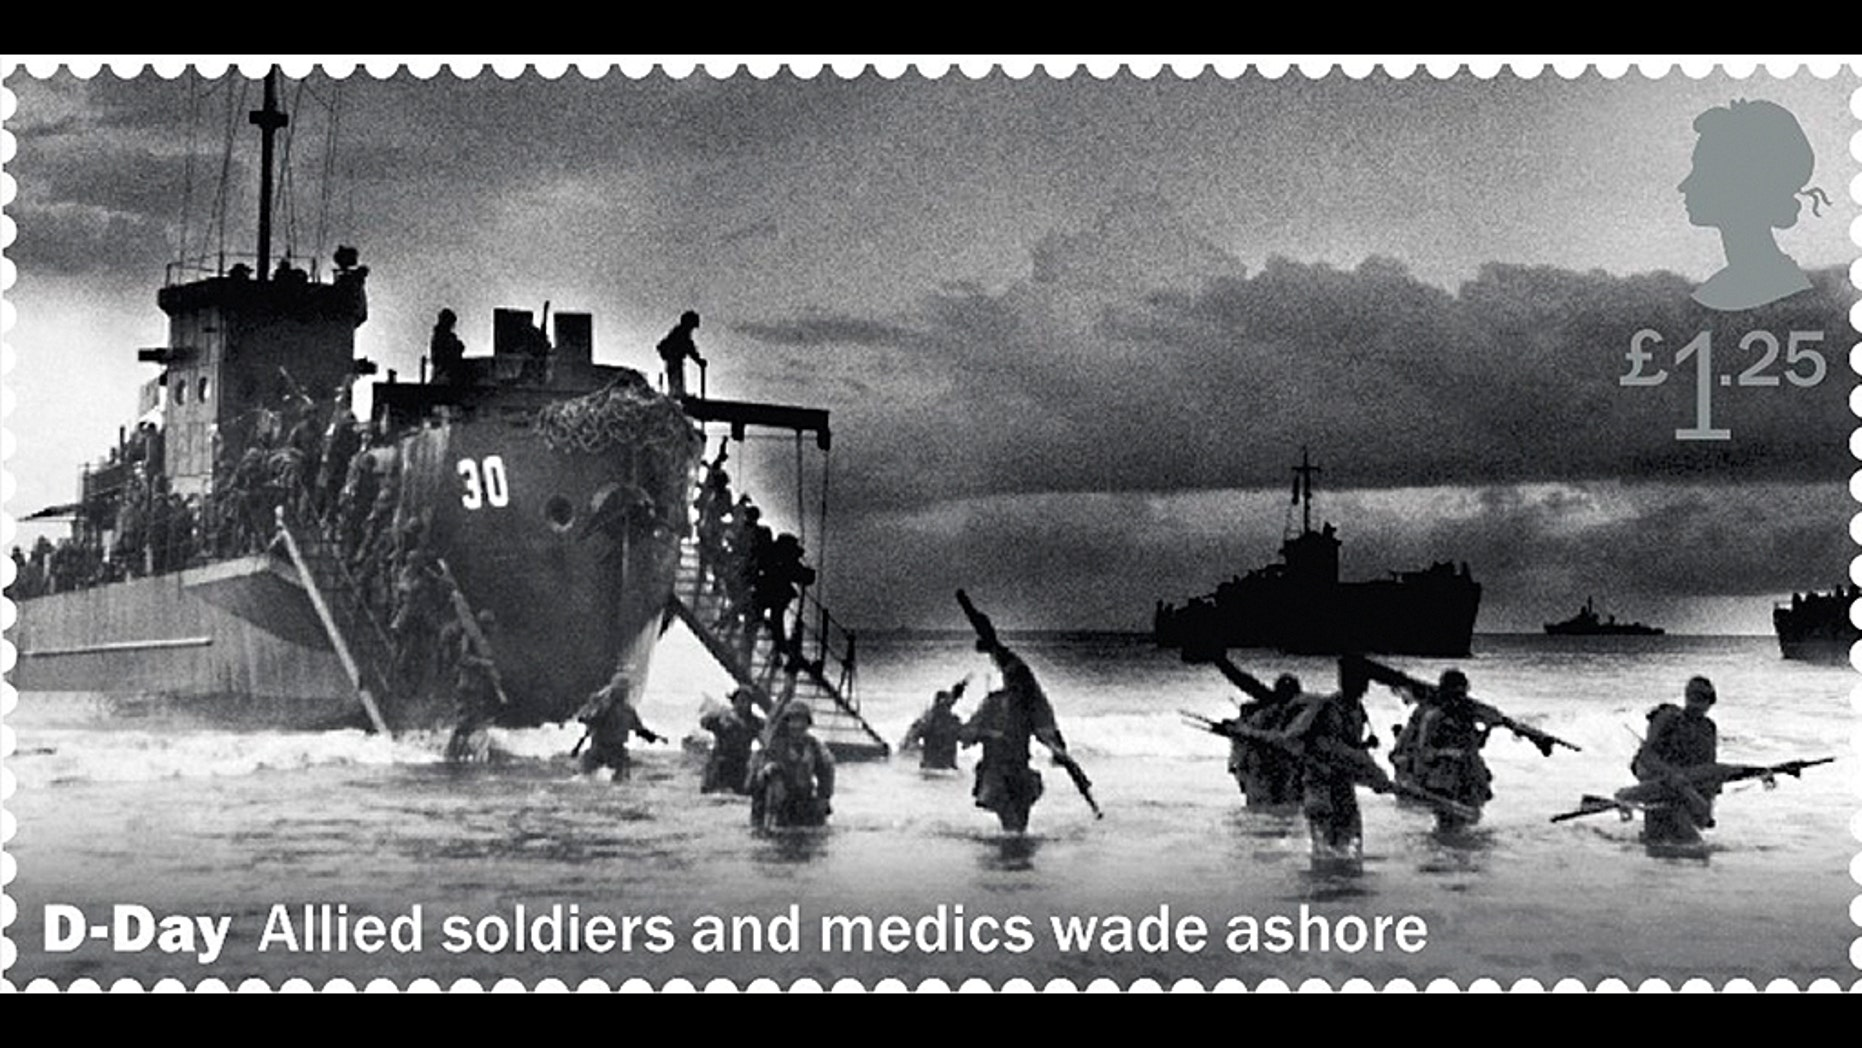 Royal Mail criticised for D-Day stamp mix-up